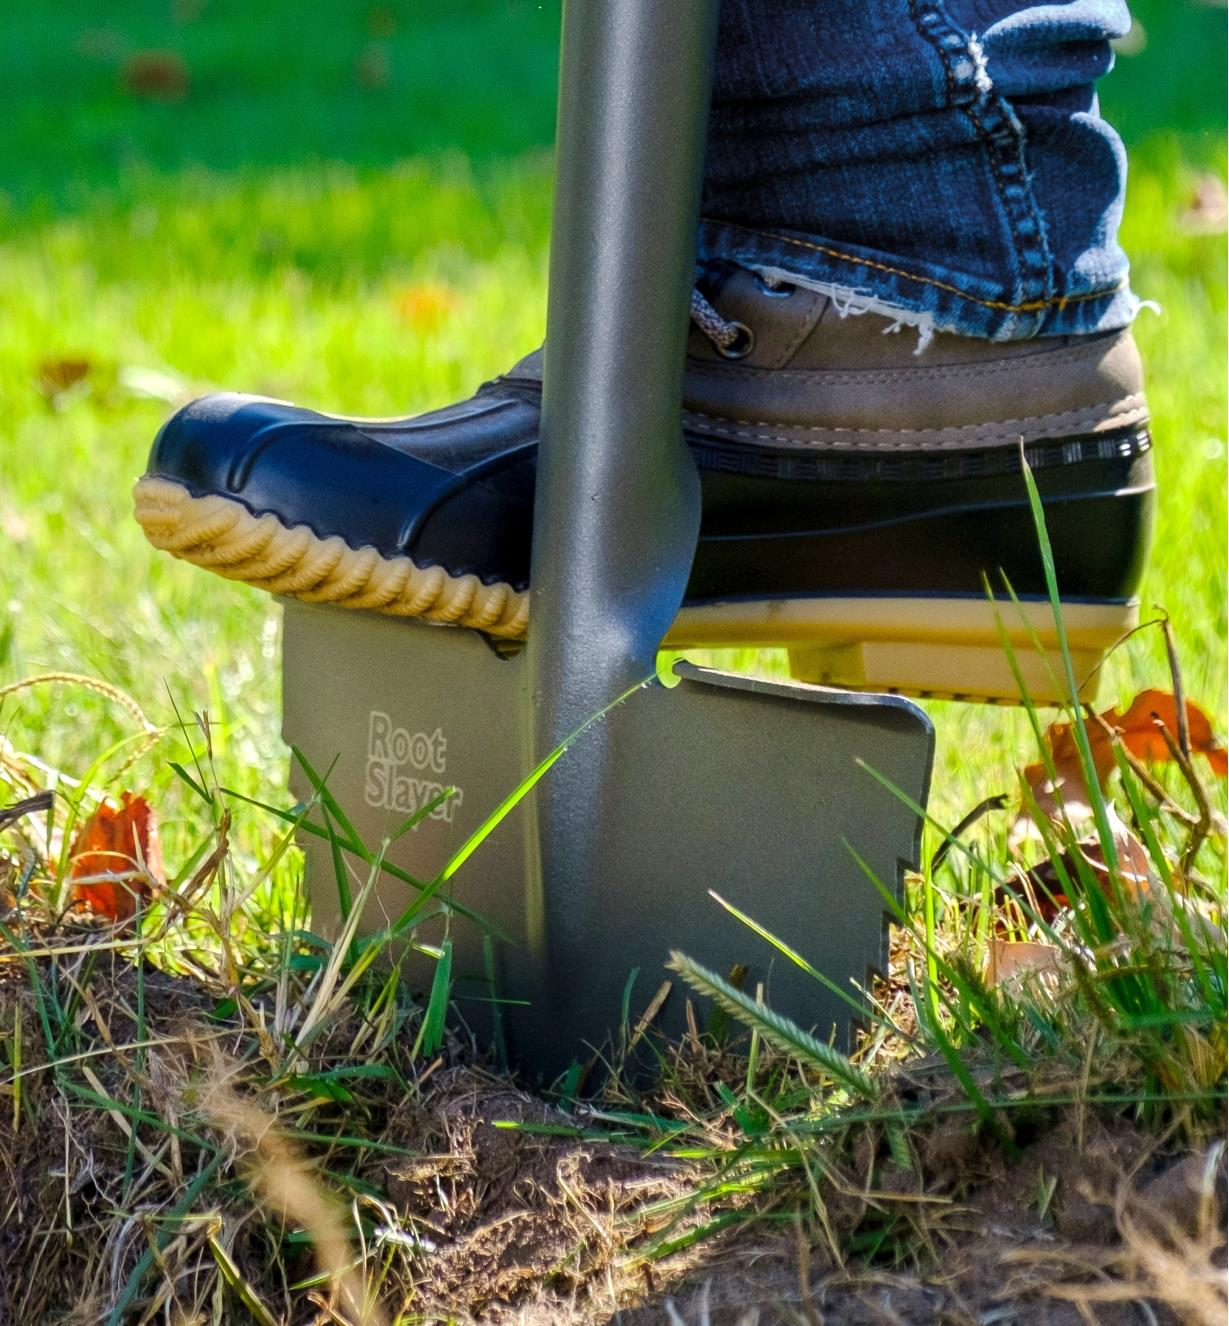 Driving a root-cutter lawn edger into the ground by pressing a foot against the blade's folded step